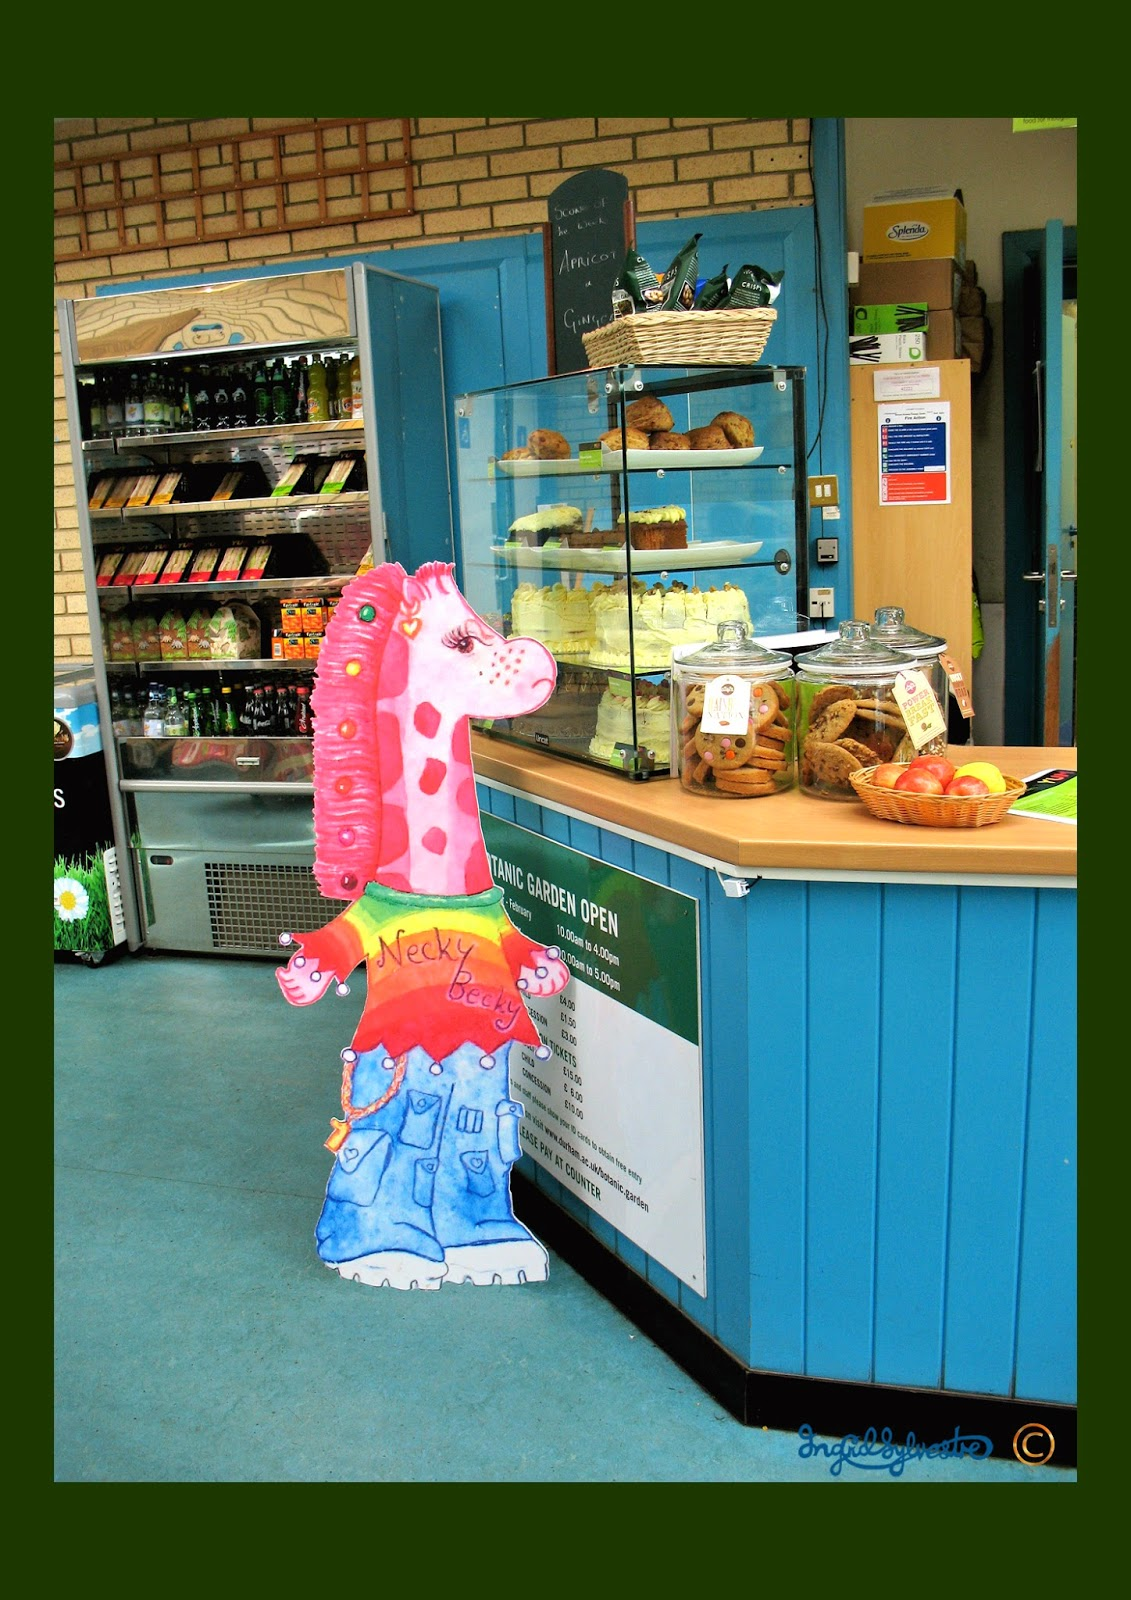 Necky Becky the Giraffe waiting for Cake at the Cafe in the University of Durham Botanic Garden Giraffe Stories and Activities Ingrid Sylvestre Artist & Writer North East UK Storyteller County Durham Newcastle upon Tyne Sunderland Tyne & Wear Middlesbrough Teesside Cleveland Northumberland Yorkshire